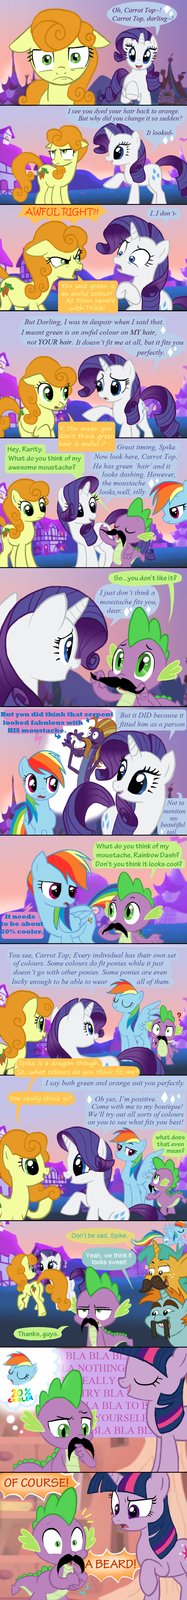 mlp_fim_during_boast_busters_by_peppersupreme-d3bvpm2.png